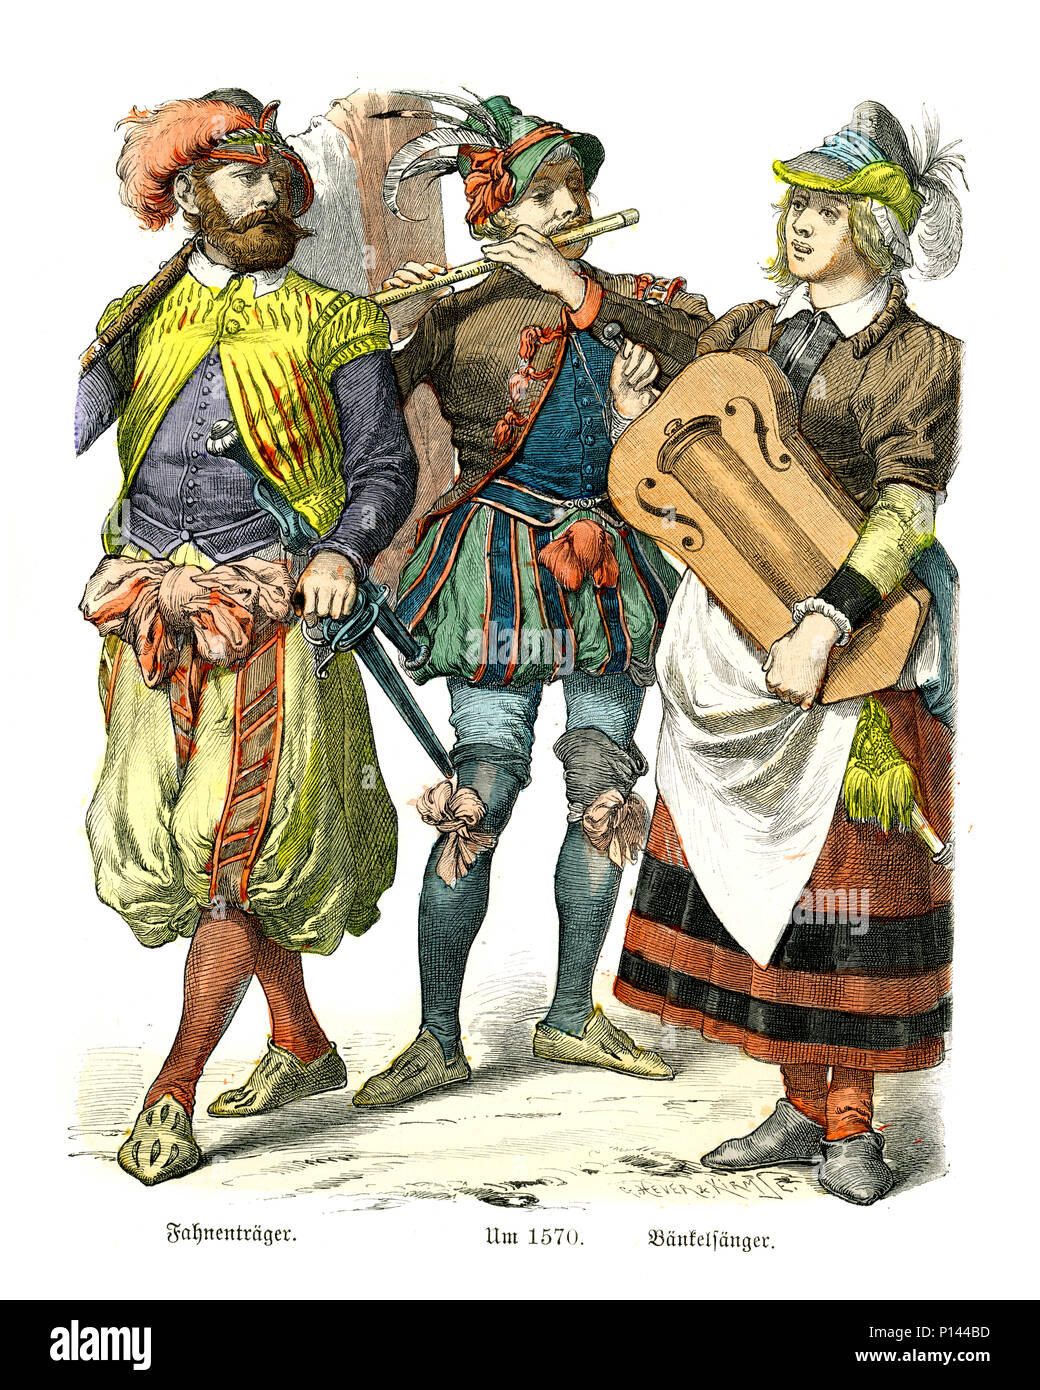 Vintage engraving of History of Fashion, Costumes of Germany 16th Century. Flag bearer and folk musicians - Stock Image